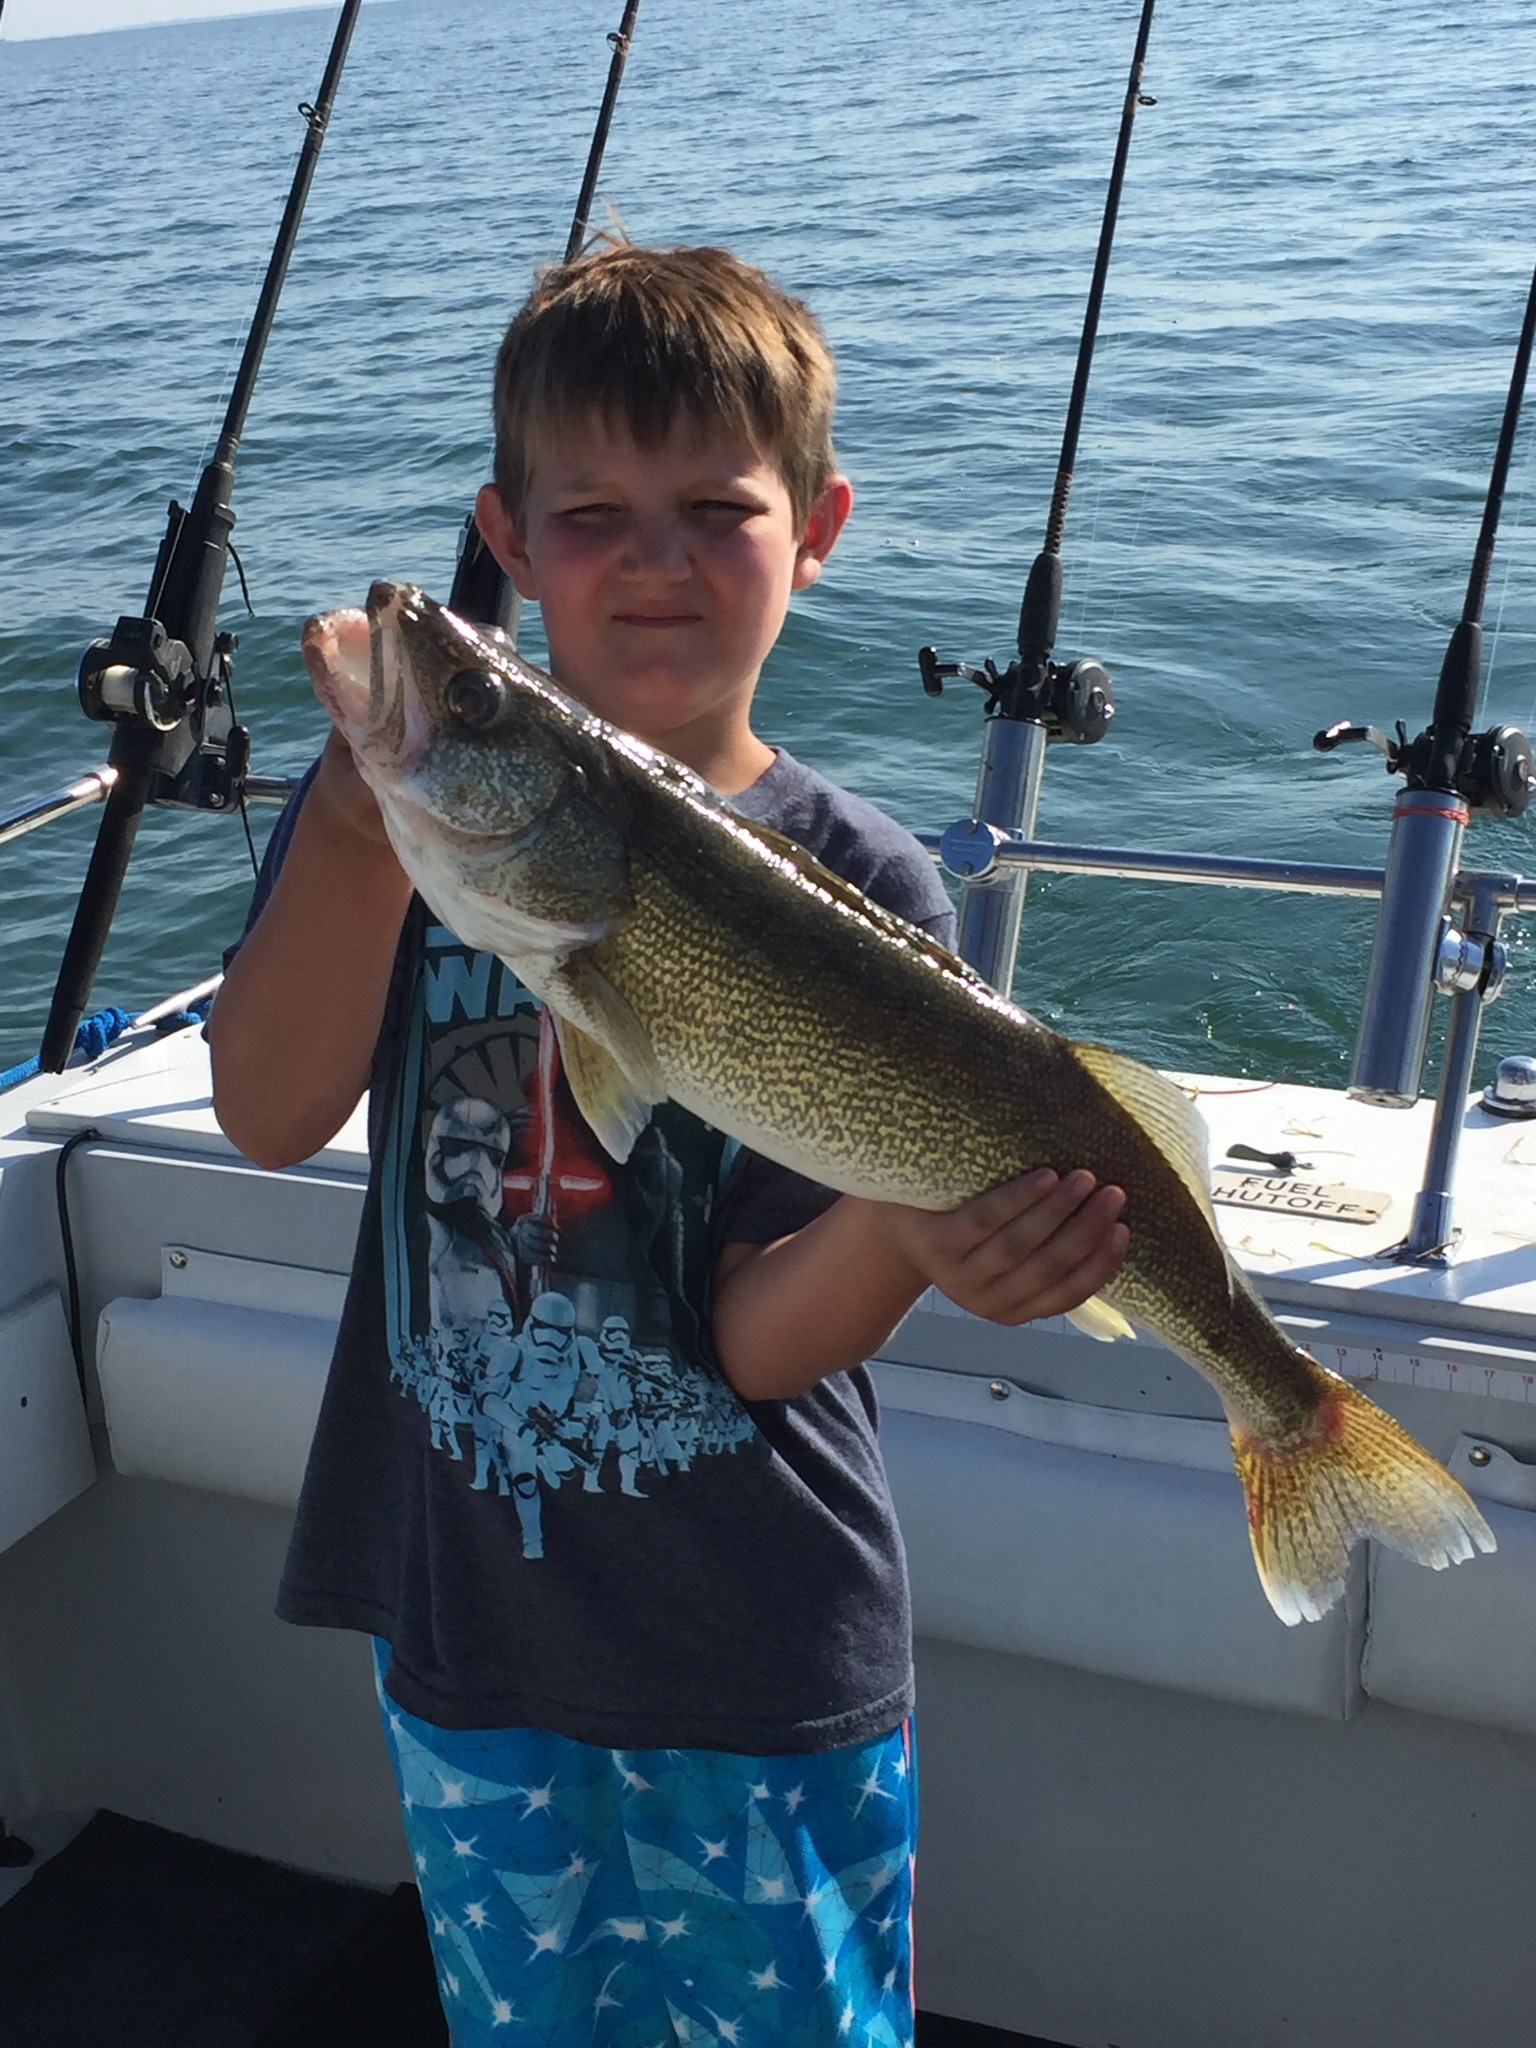 Ohio sea grant stray cat fishing charters lake erie for Lake erie fish species